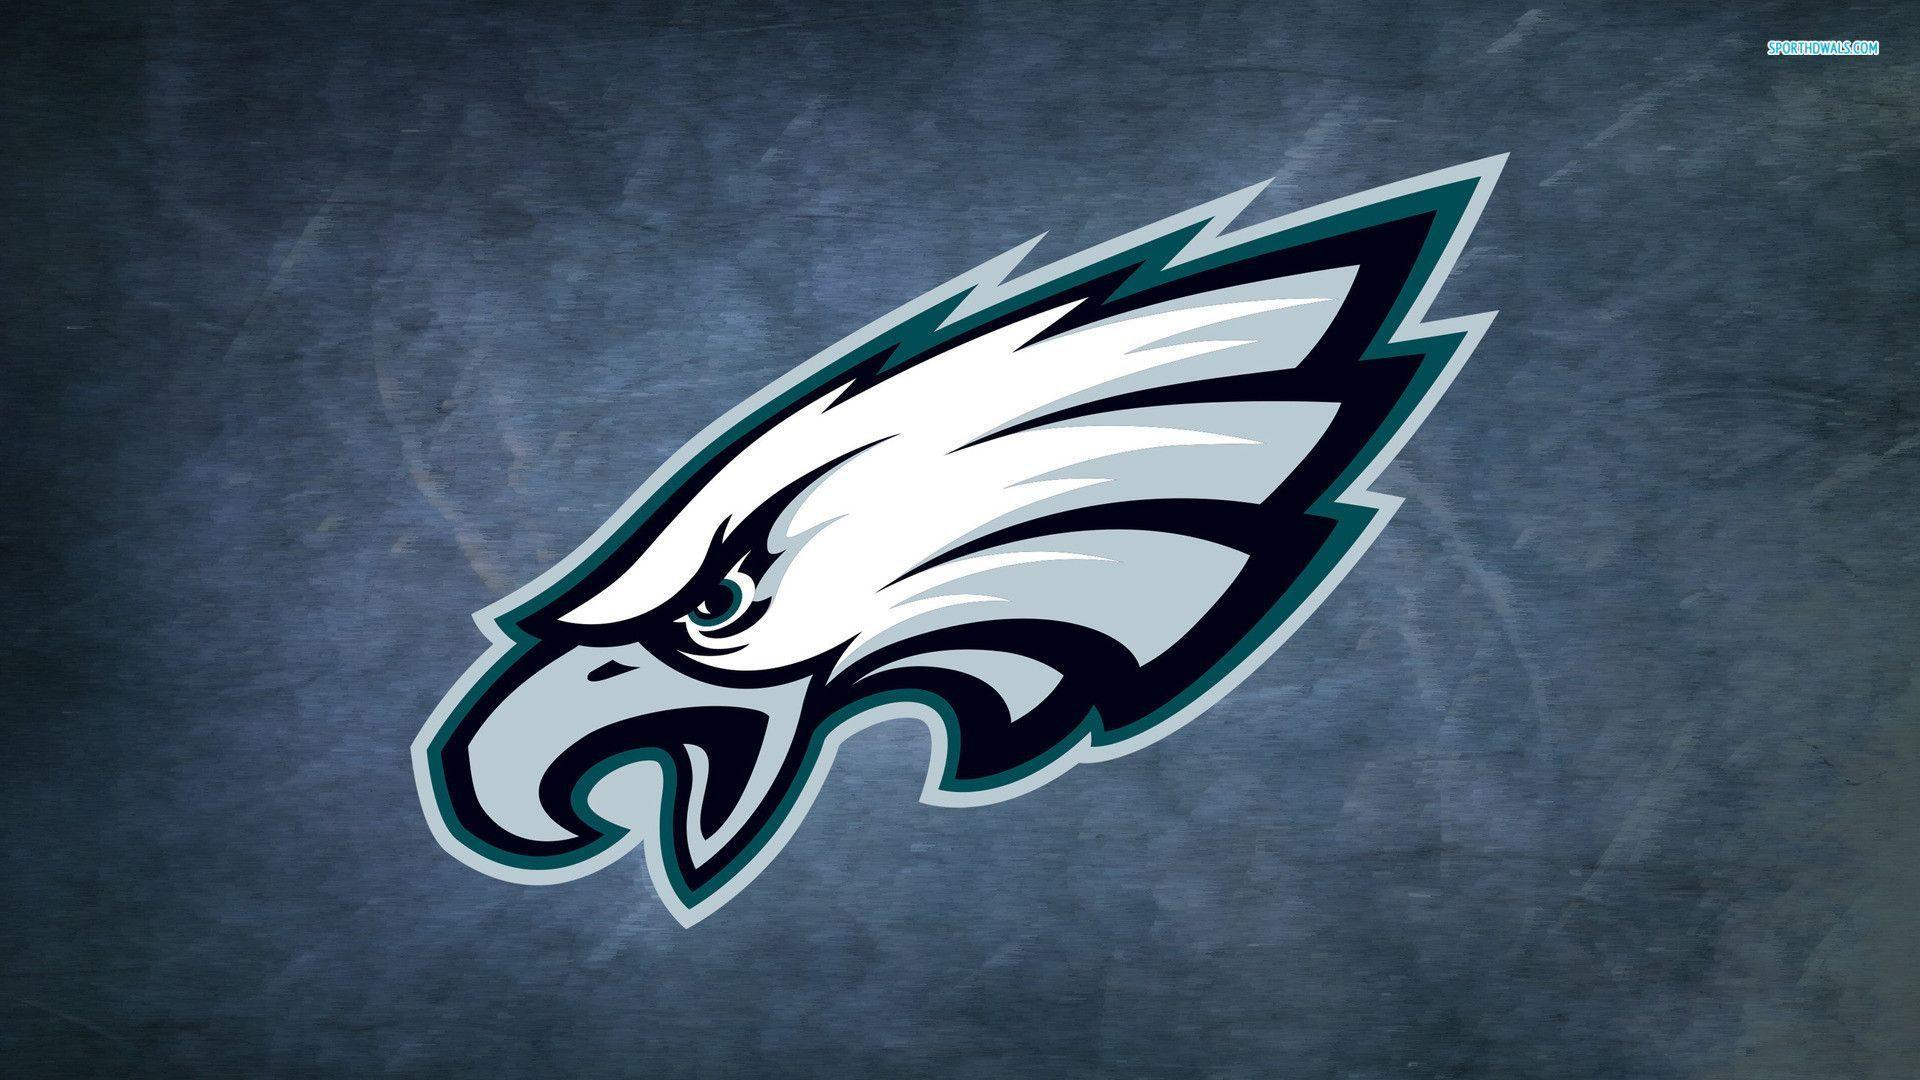 wallpaper eagles logo - photo #1